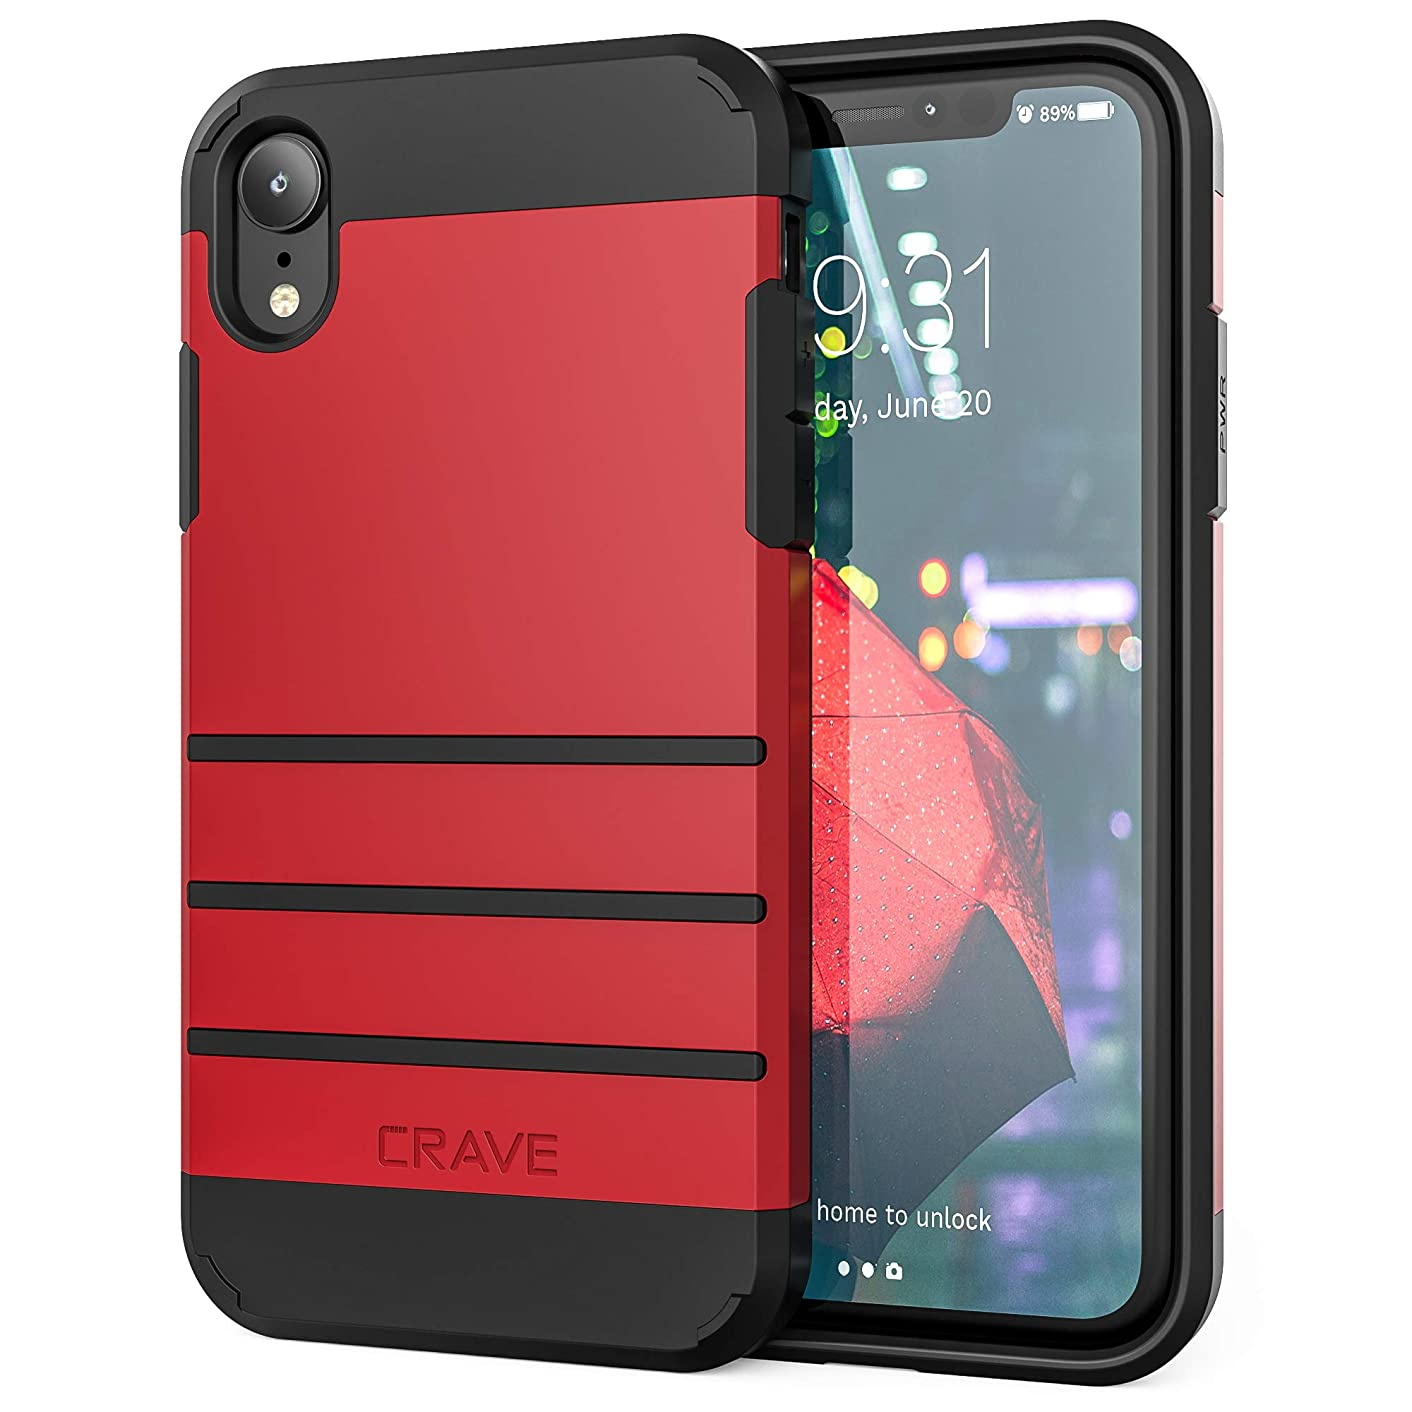 iPhone XR Case, Crave Strong Guard Protection Series Case for Apple iPhone XR (6.1 inch) - Red